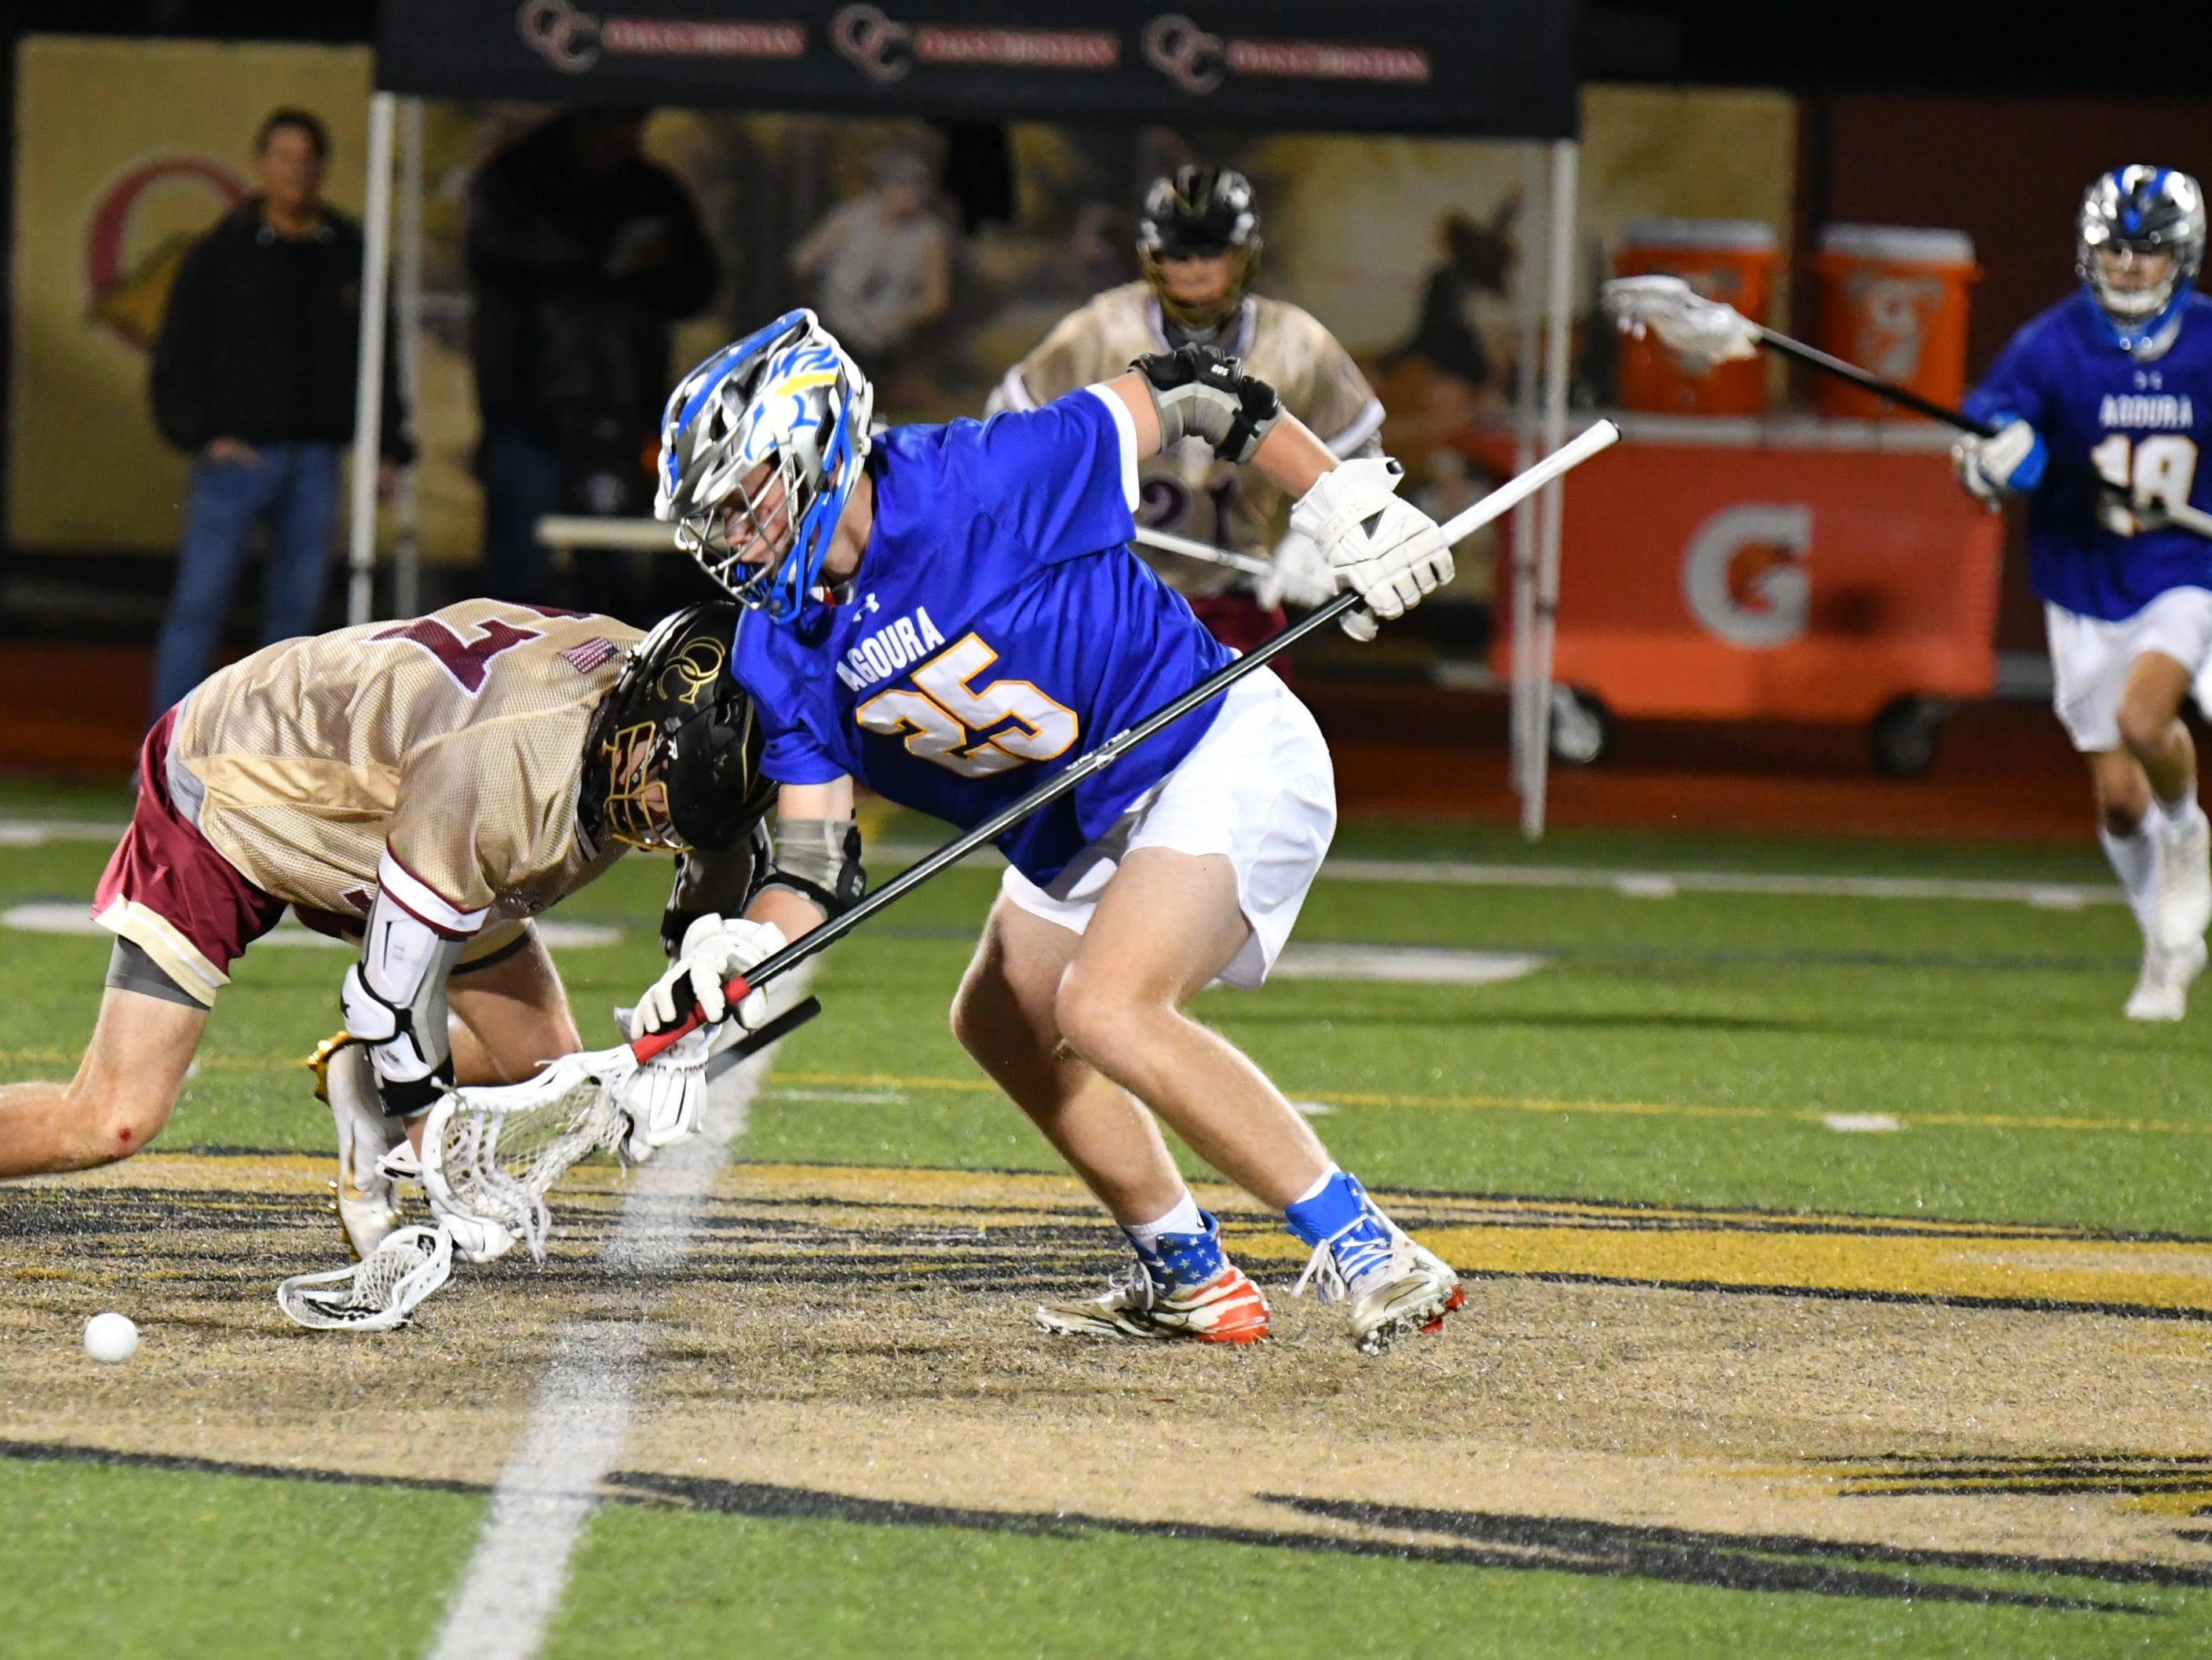 Oaks Christian's Spencer Hill and Agoura's Jaxon Spar battle for a ground ball during the teams' triple-overtime thriller on March 6. Oaks Christian won, 8-7.